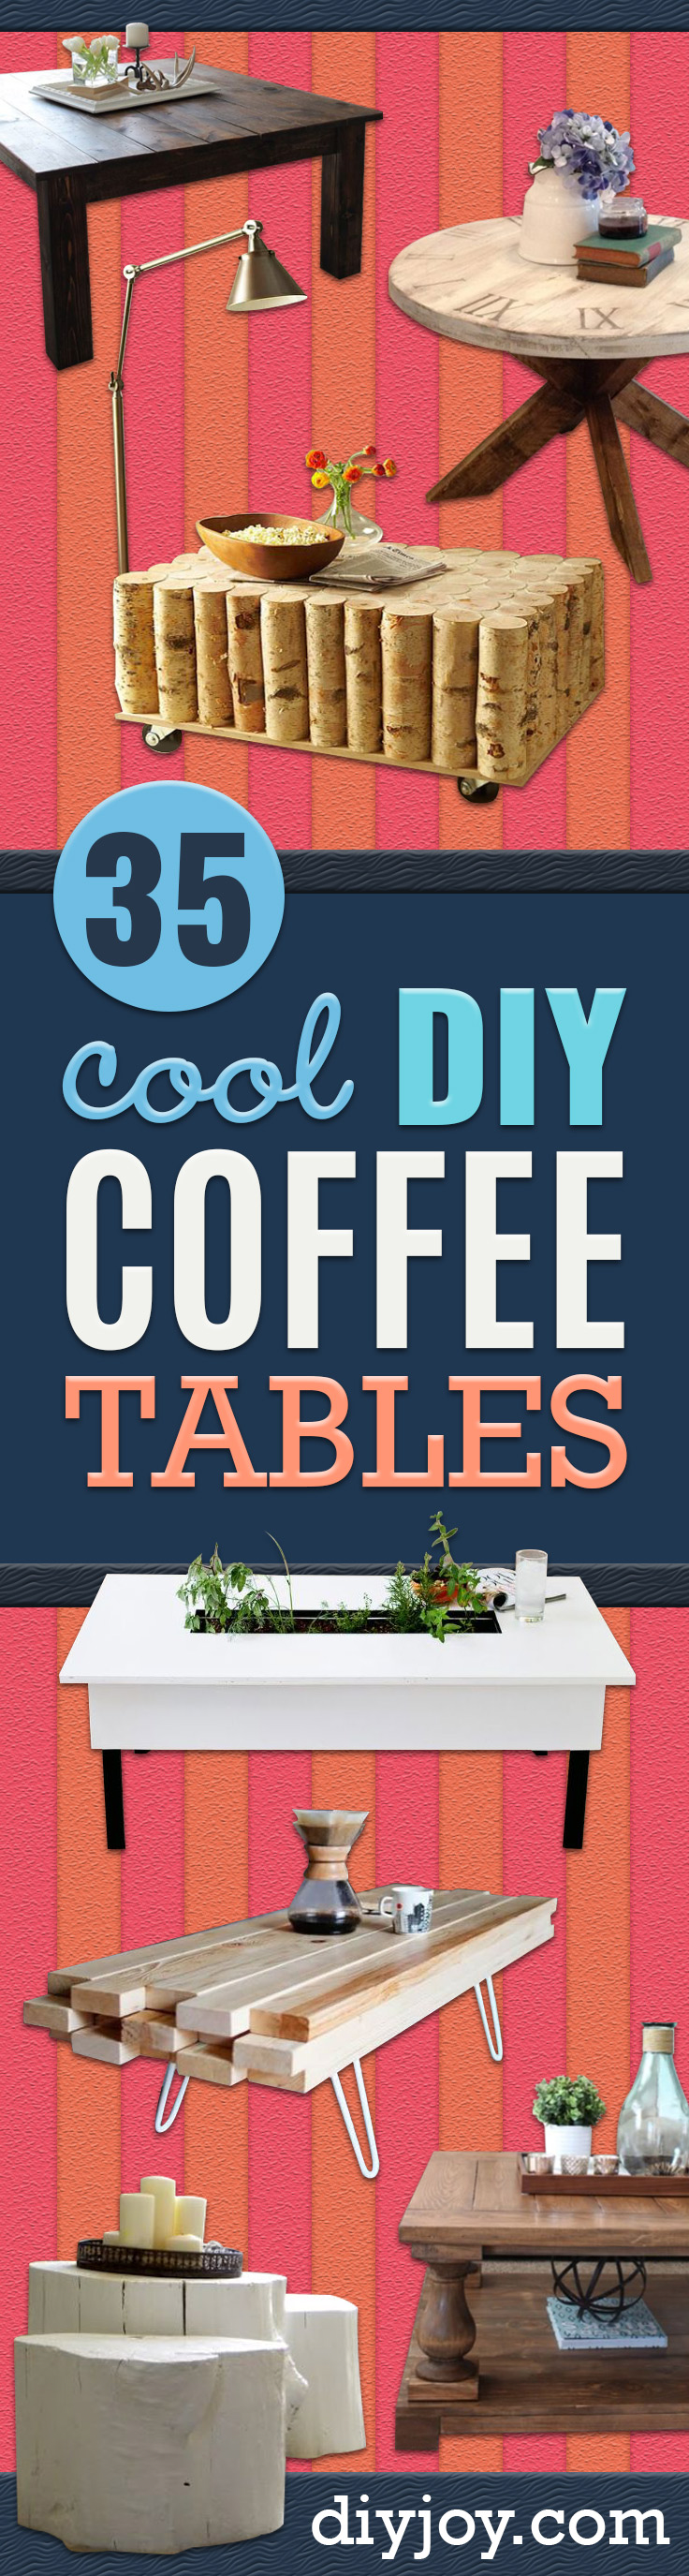 Diy Coffee Tables  Easy Do It Yourself Furniture Ideas